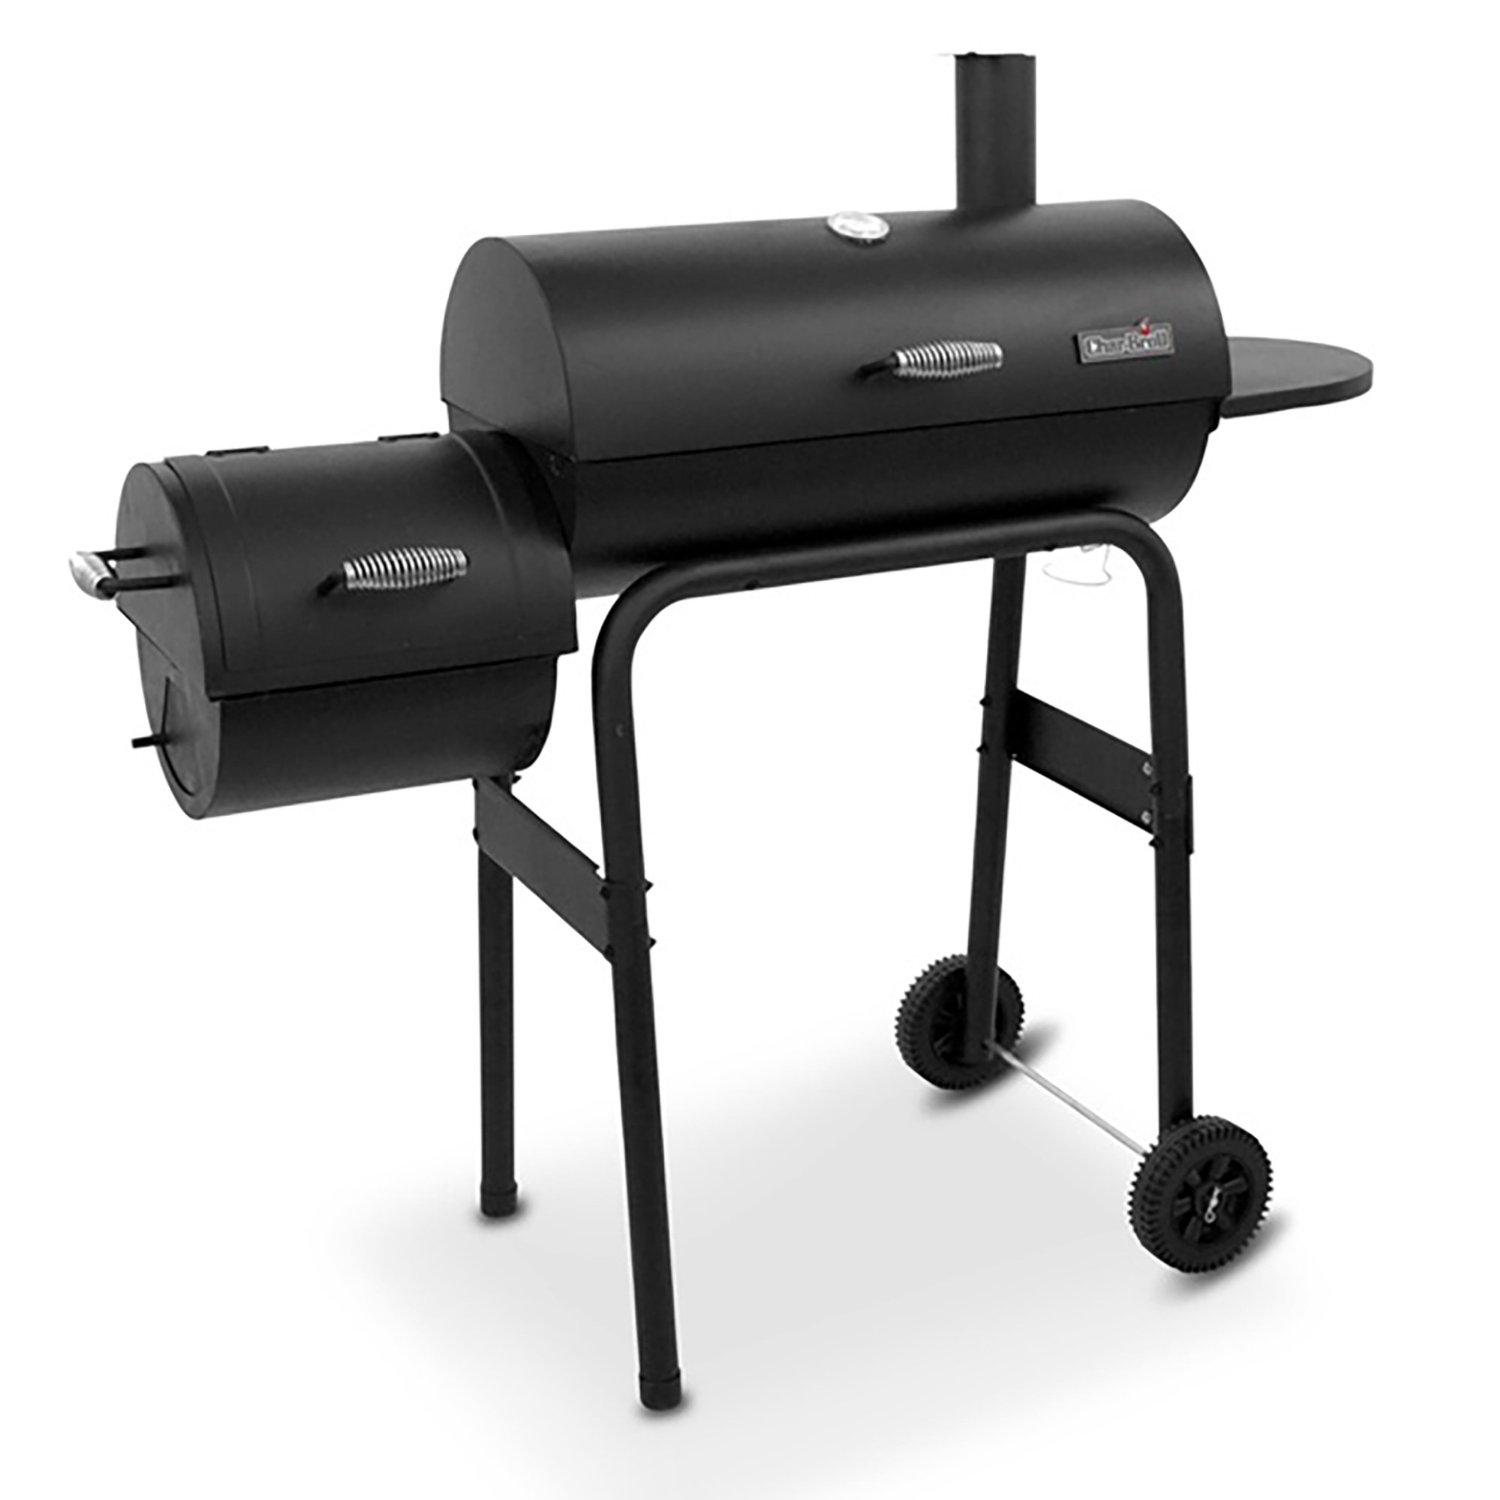 Char-Broil Barrel Smoker Grill